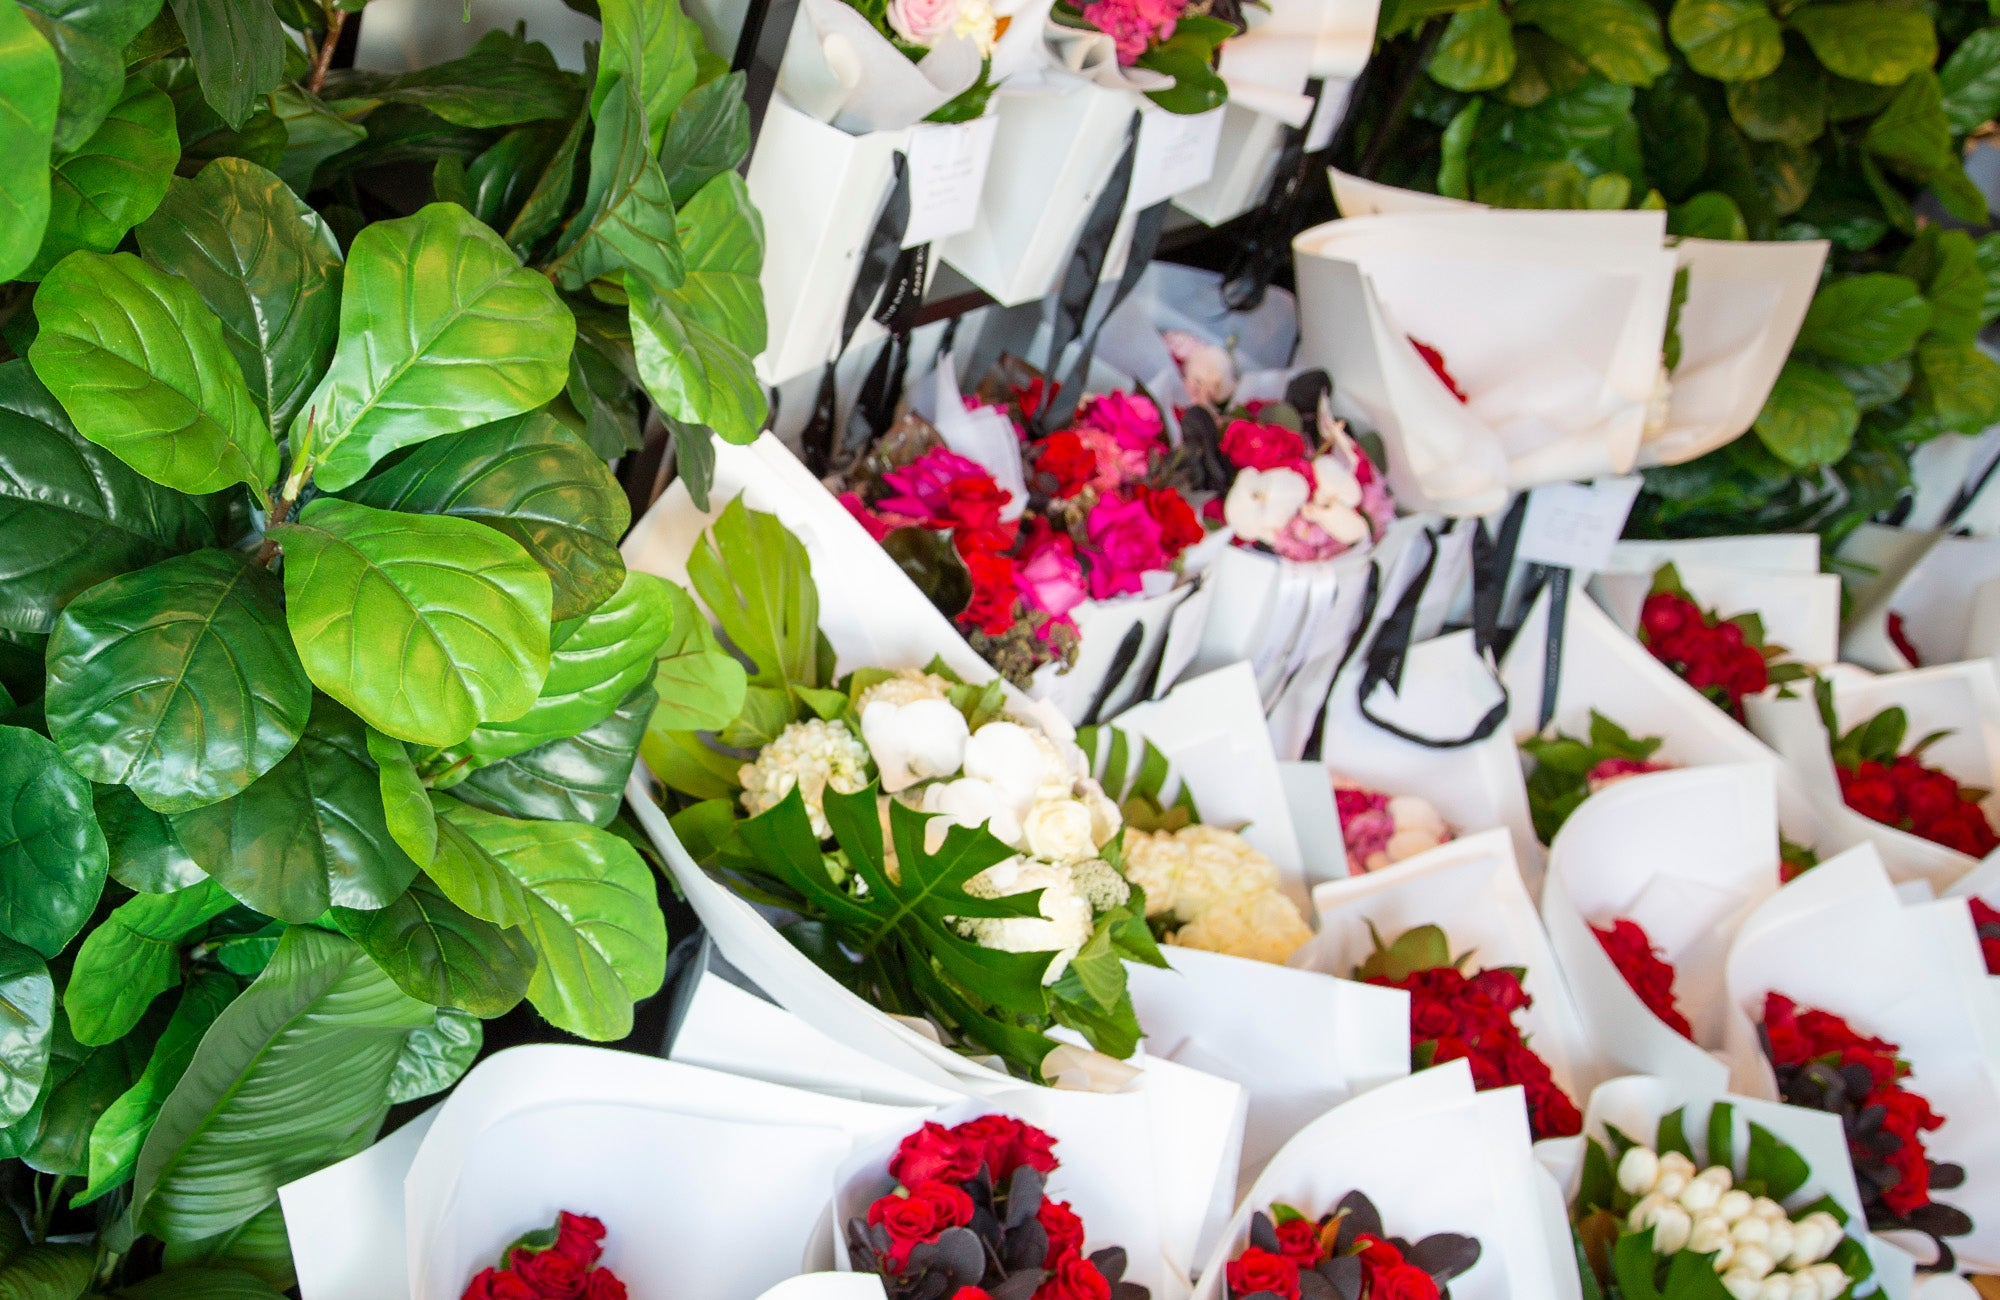 Flower bouquets for sale at South Melbourne florist on shop stand